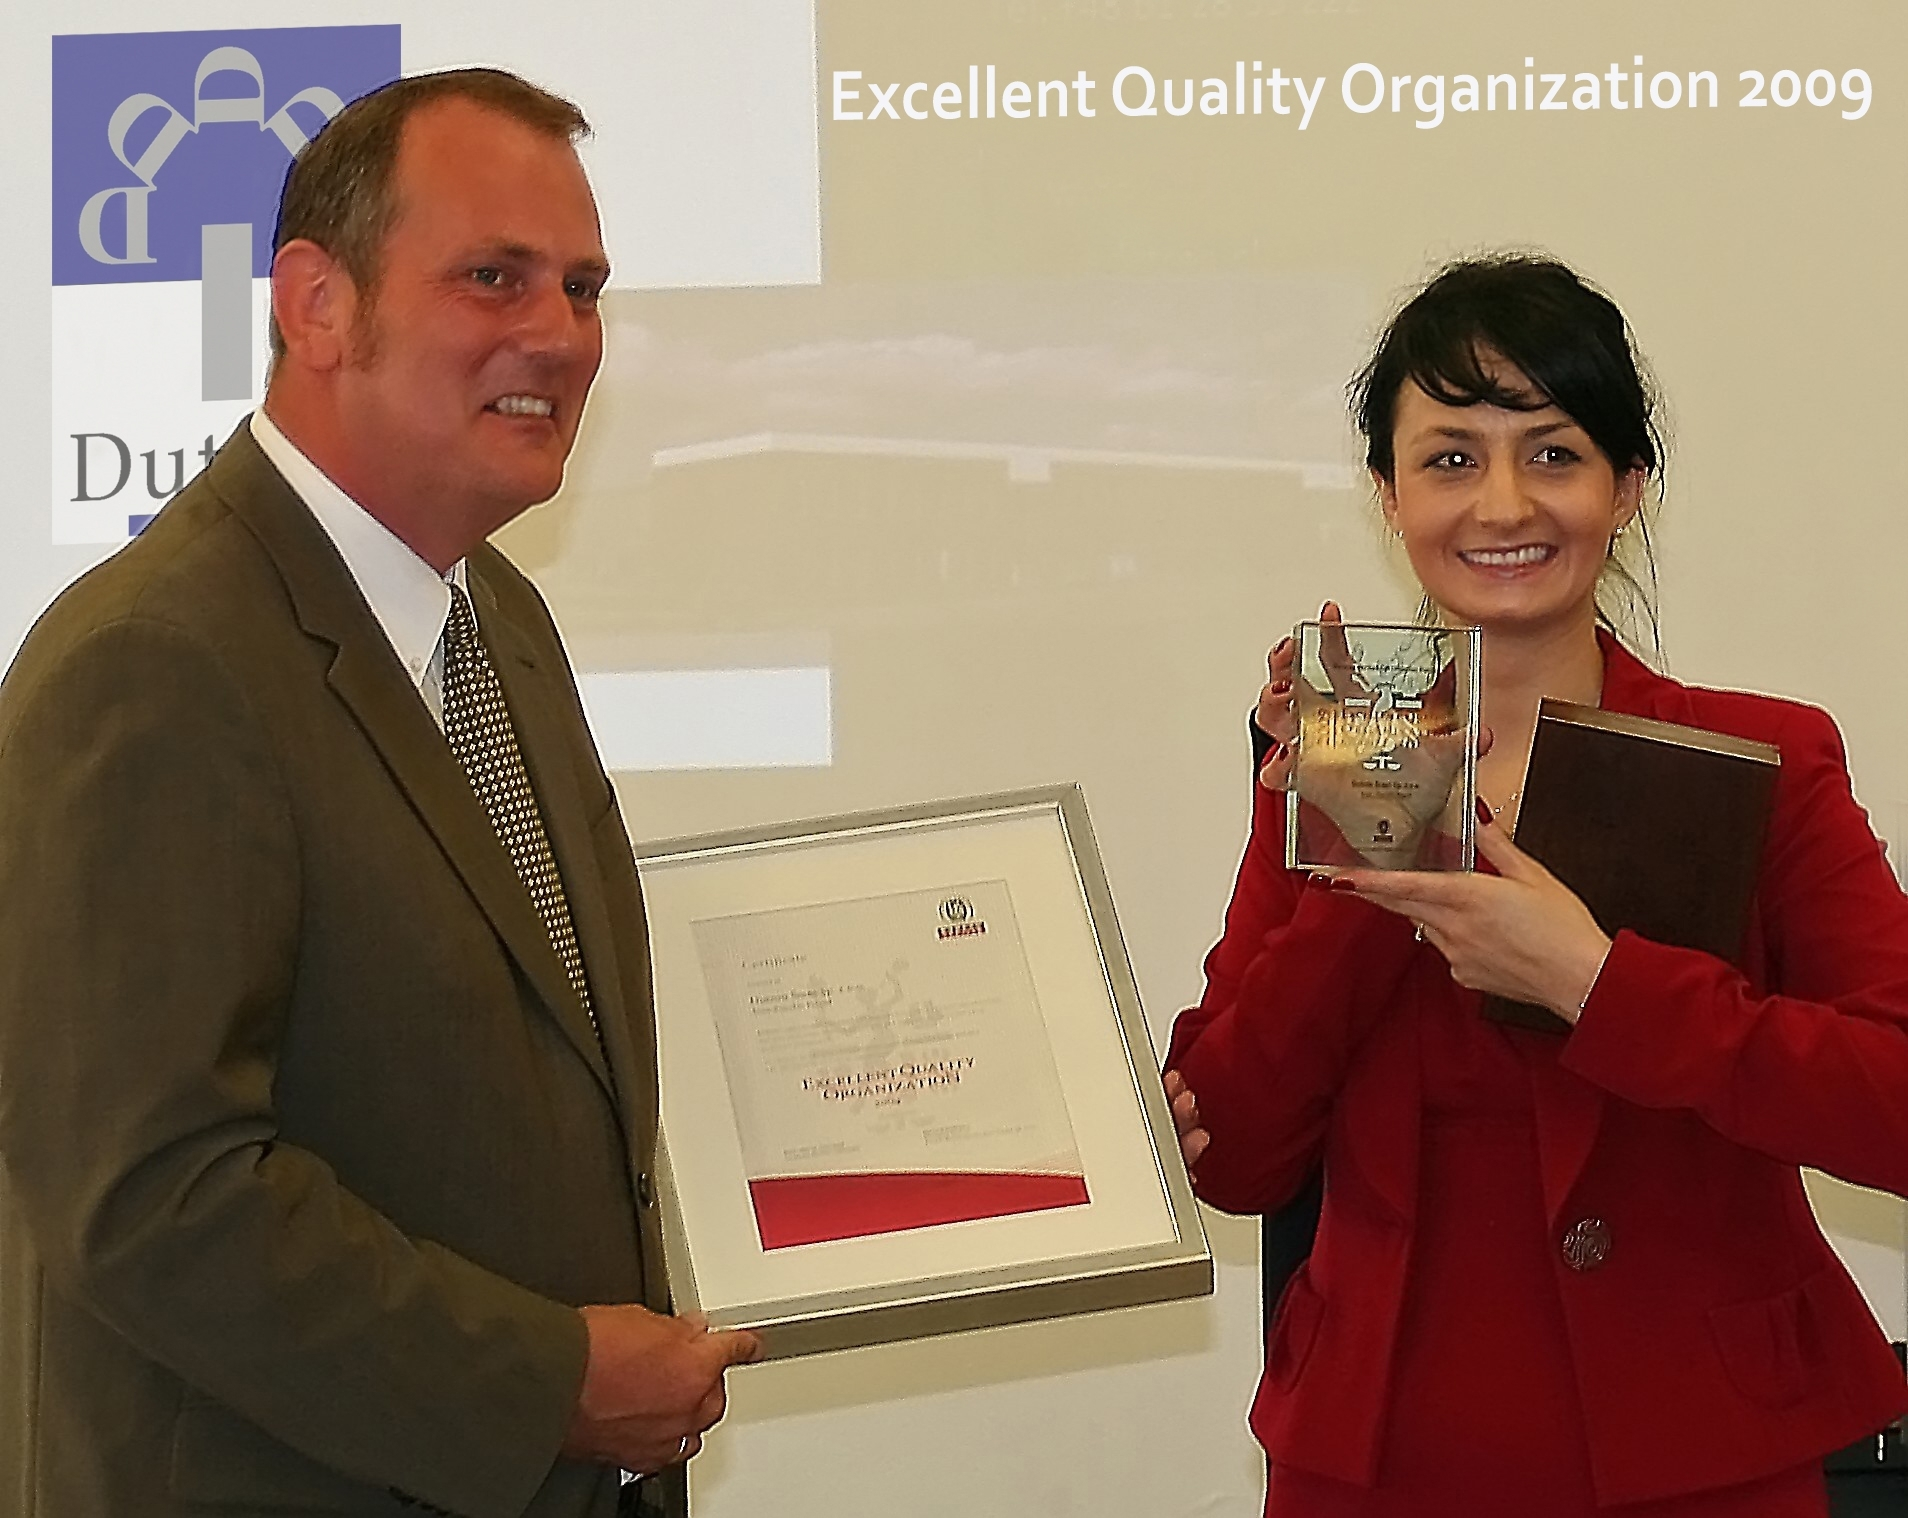 Excellent Quality Organization Award 2009